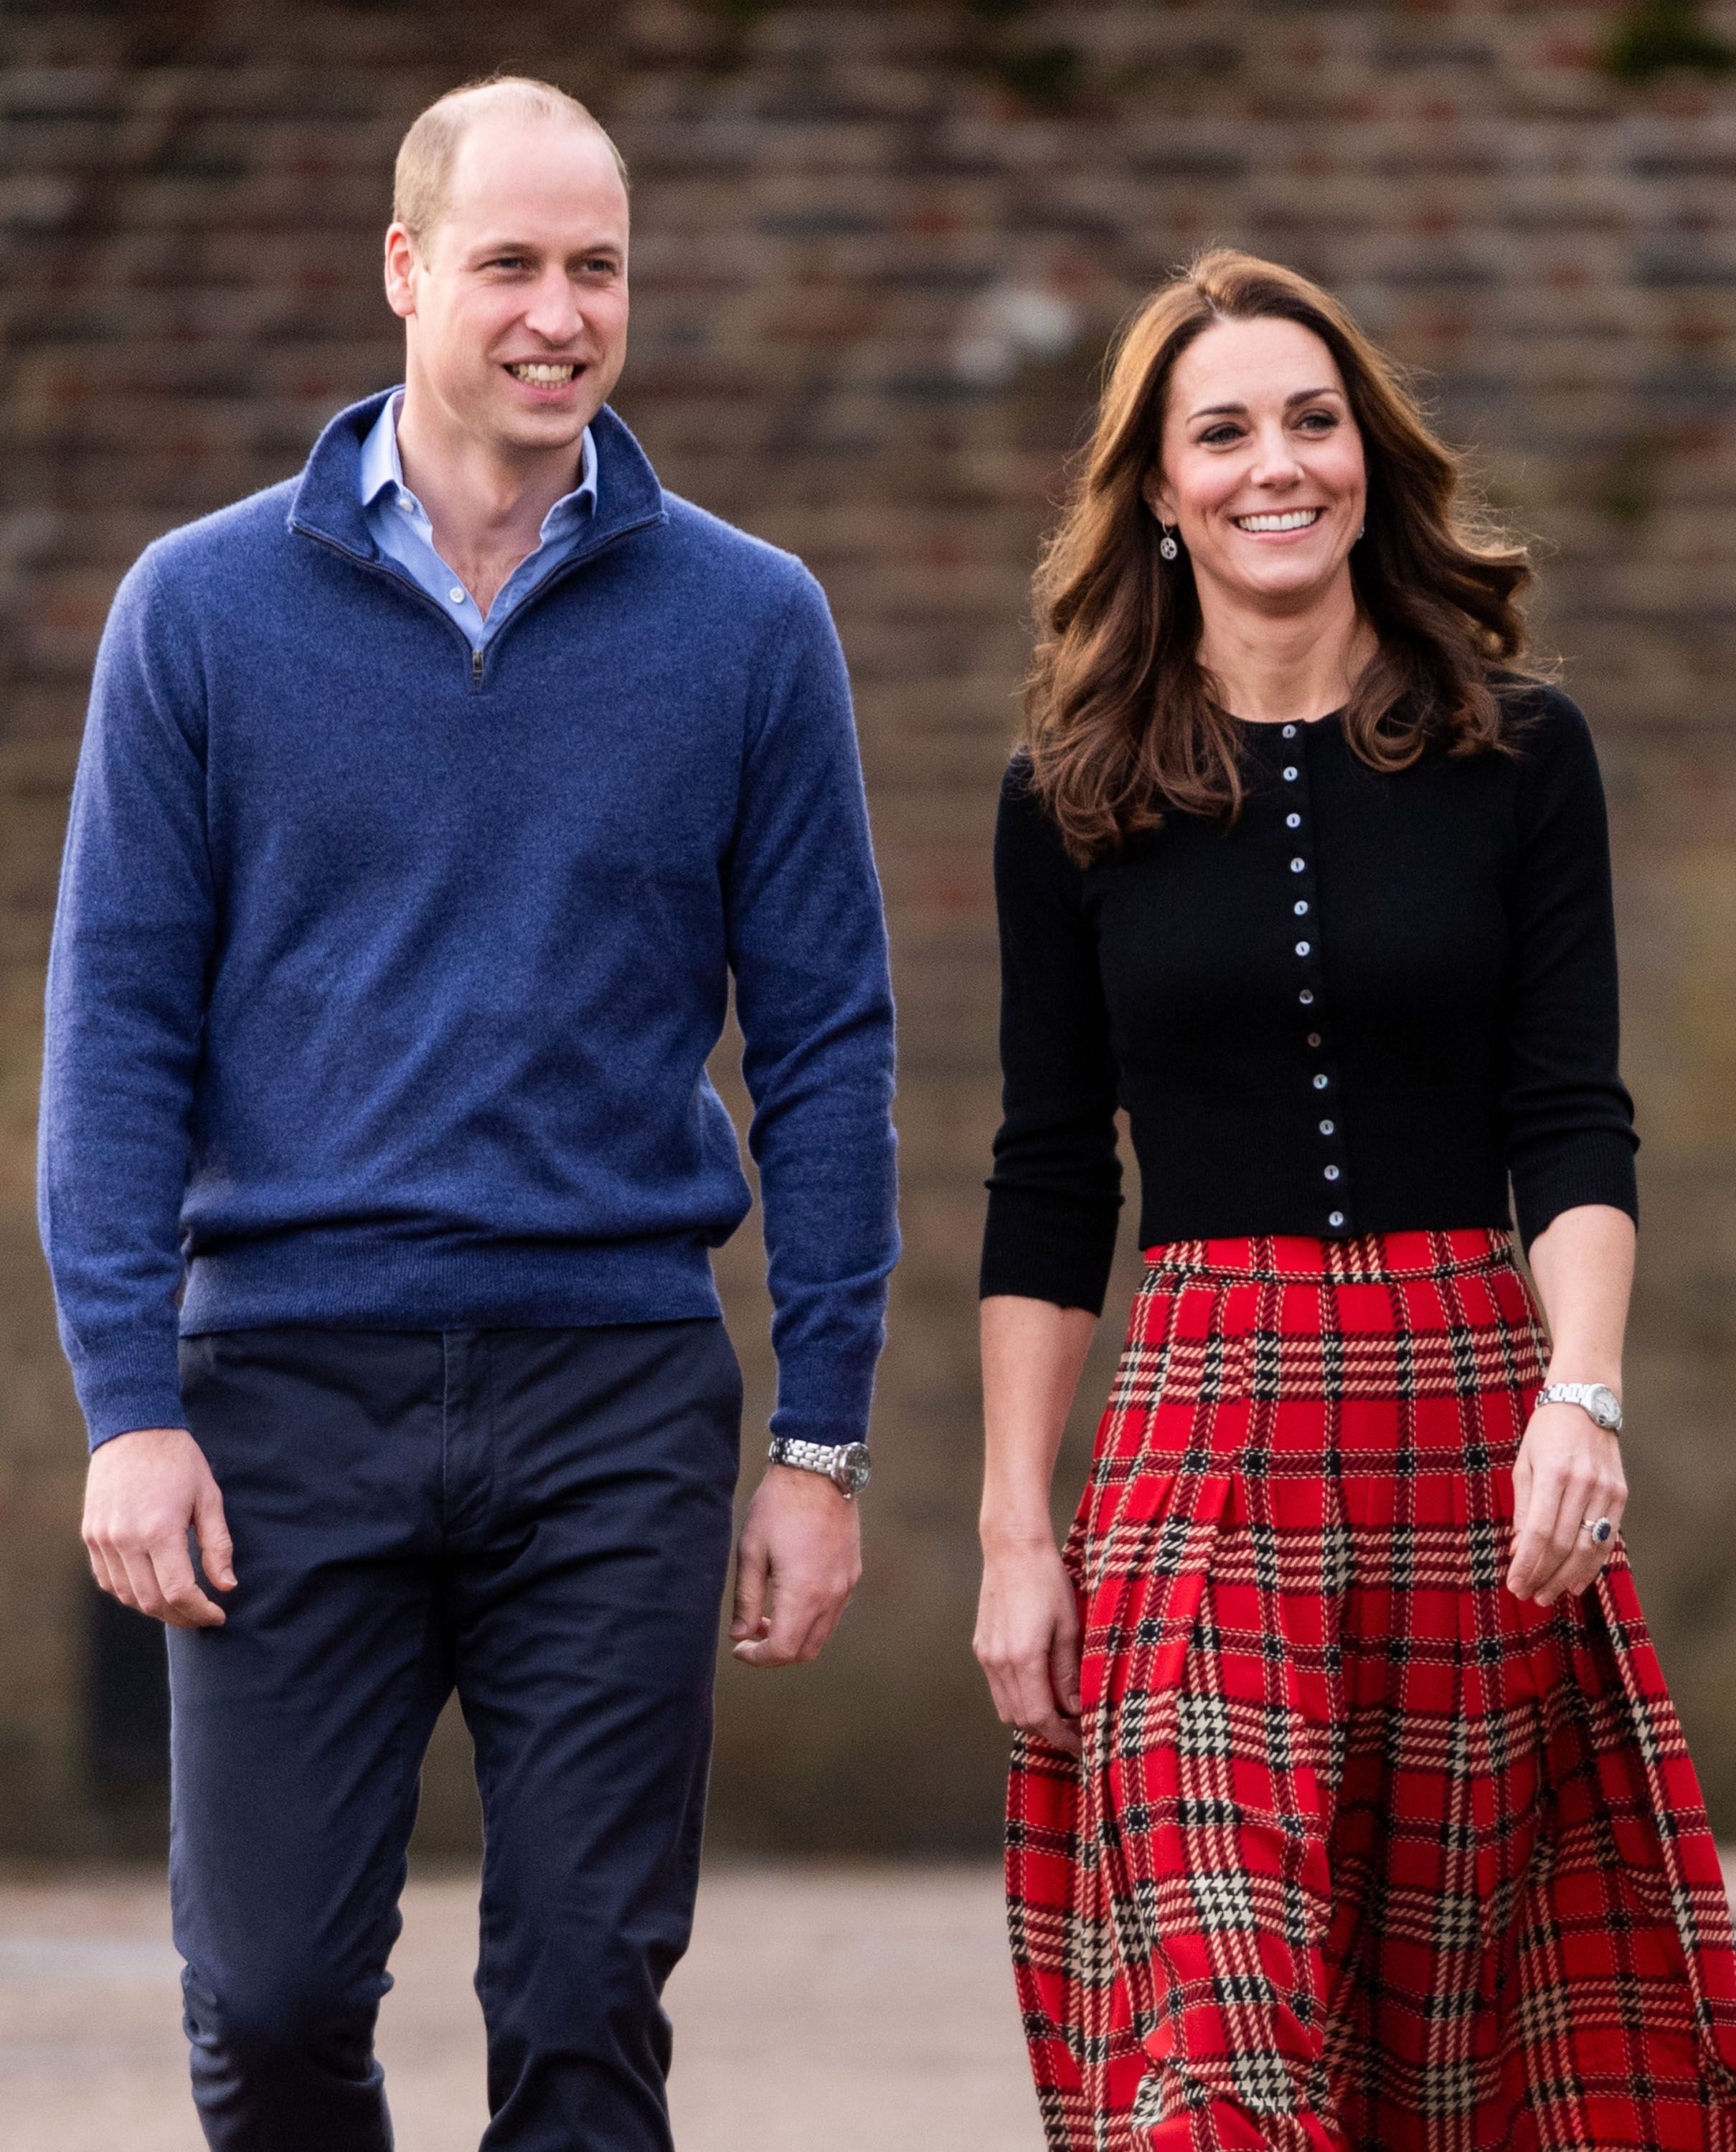 Kate Middleton and Prince William Are Examining Their Relationship Following Those Affair Rumors